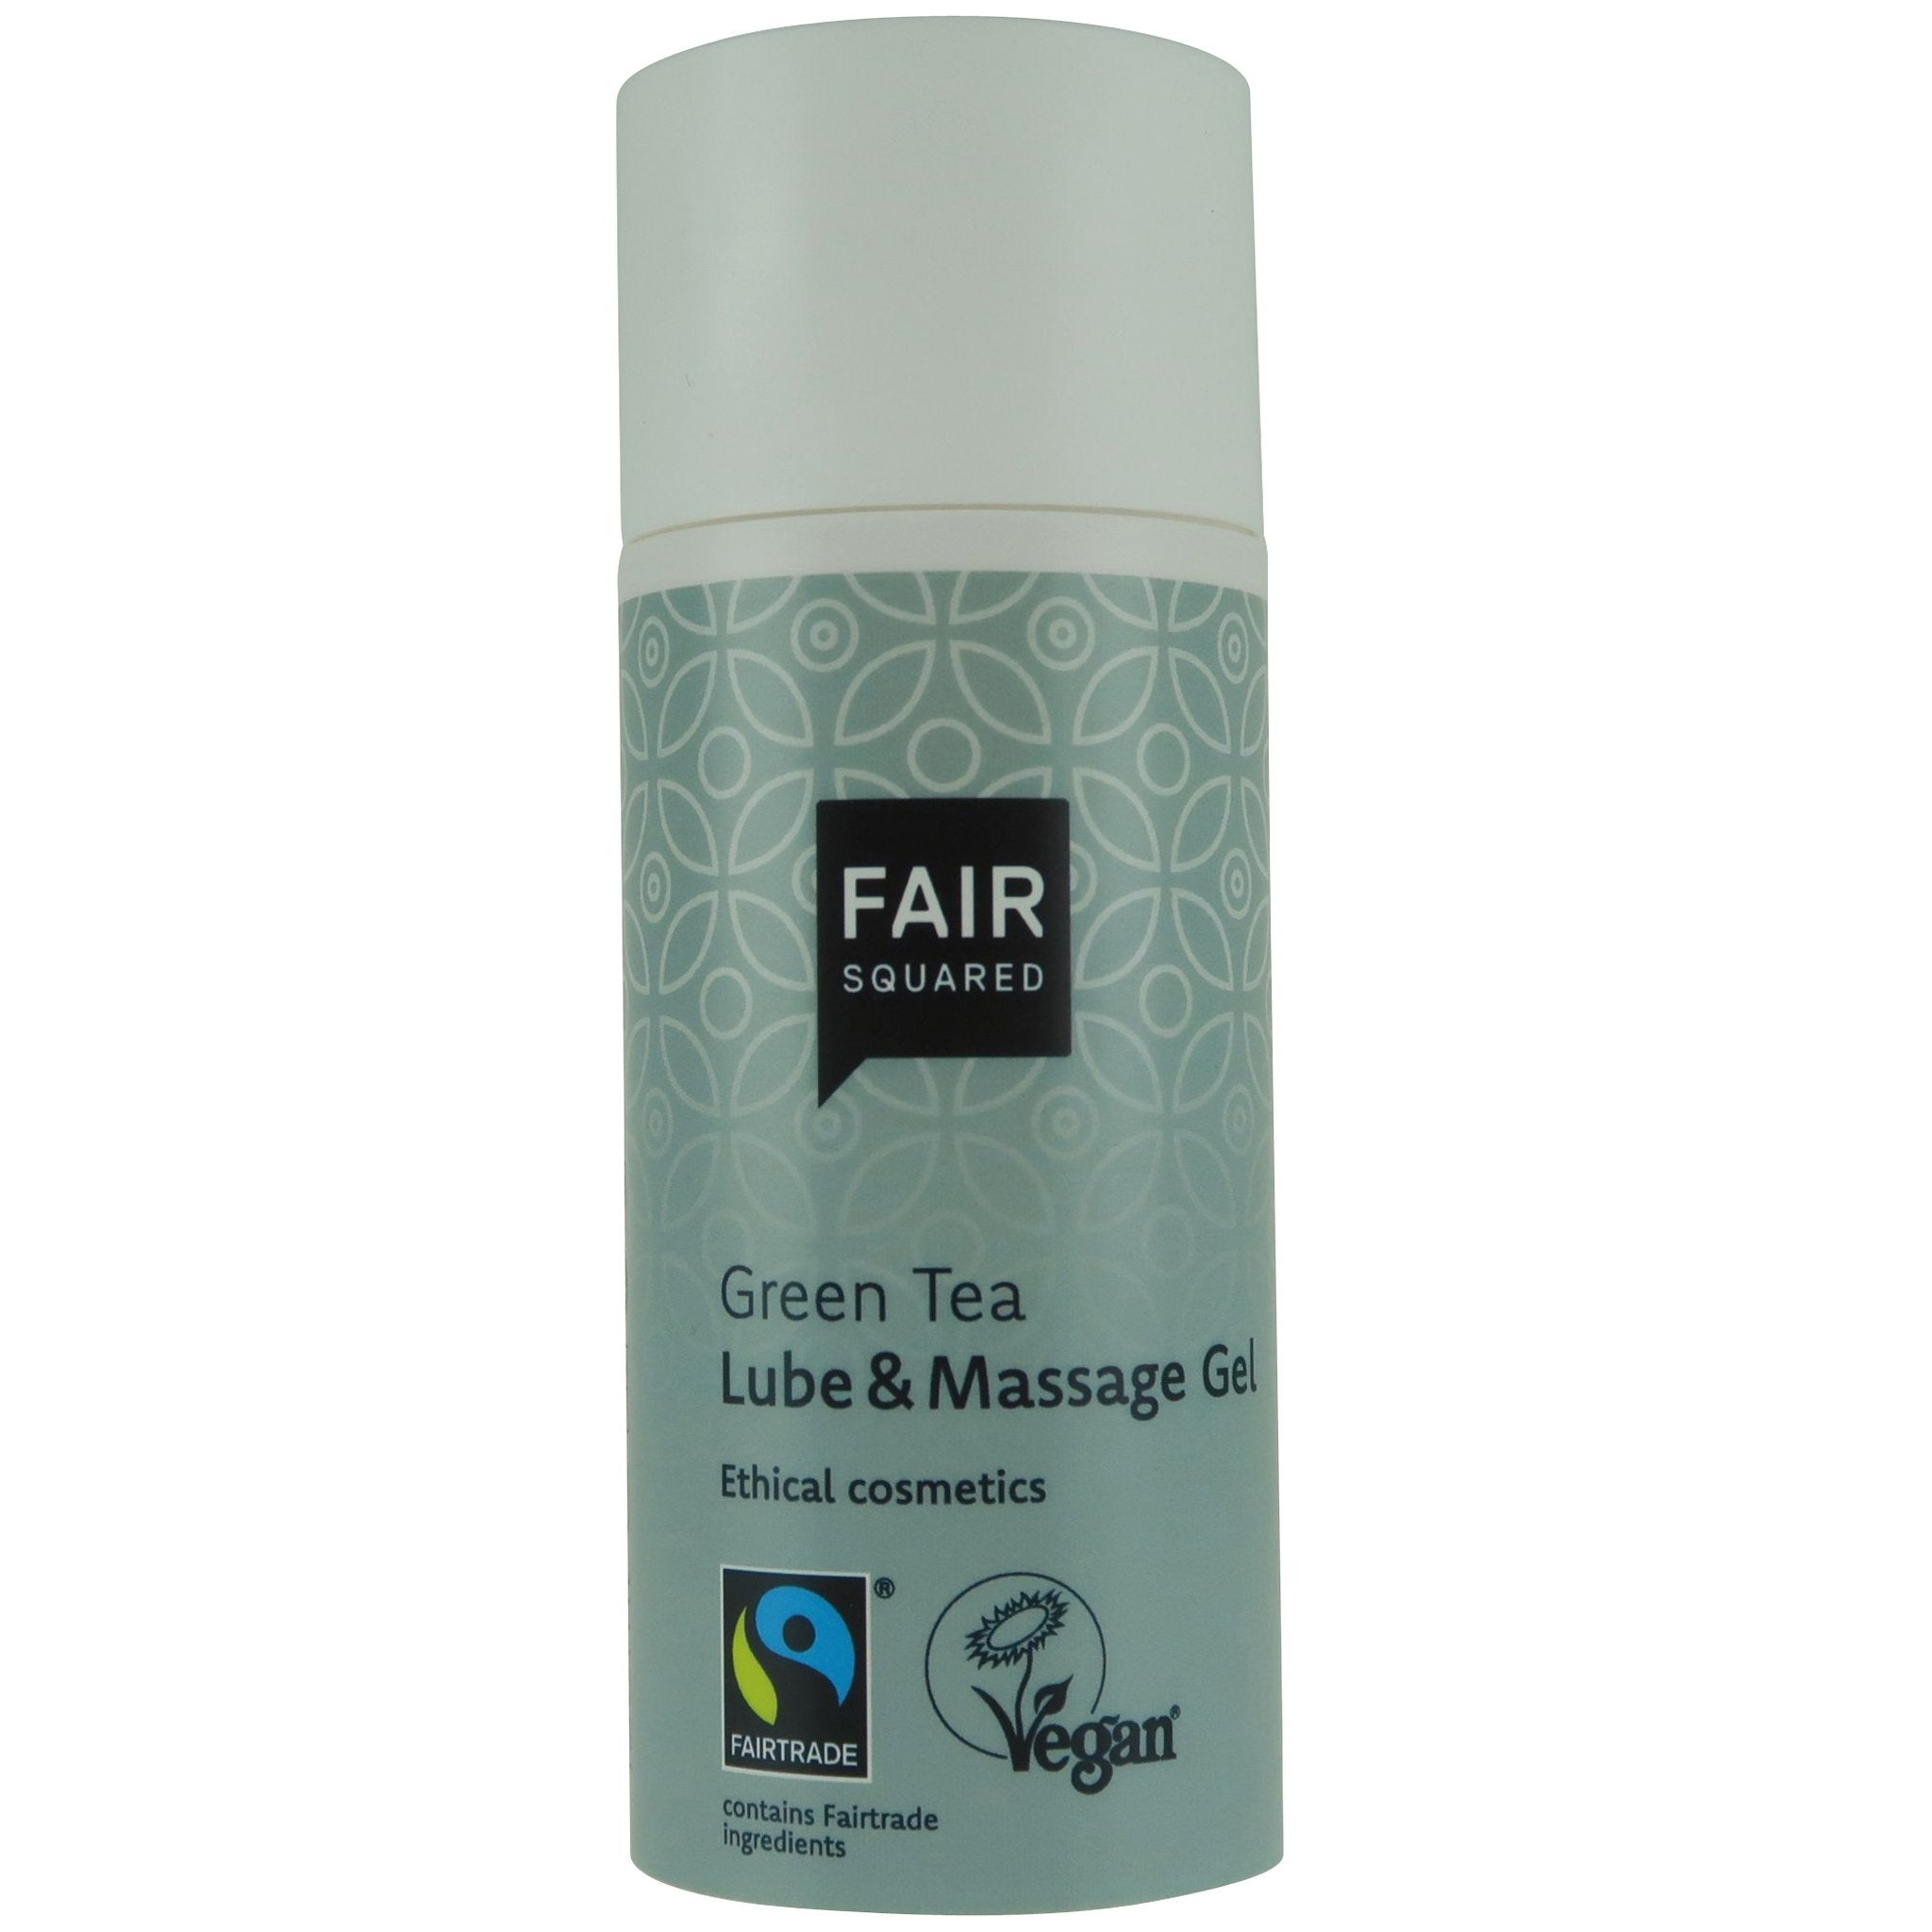 Billede af FAIR SQUARED Green Tea Lube and Massage Gel 50ml